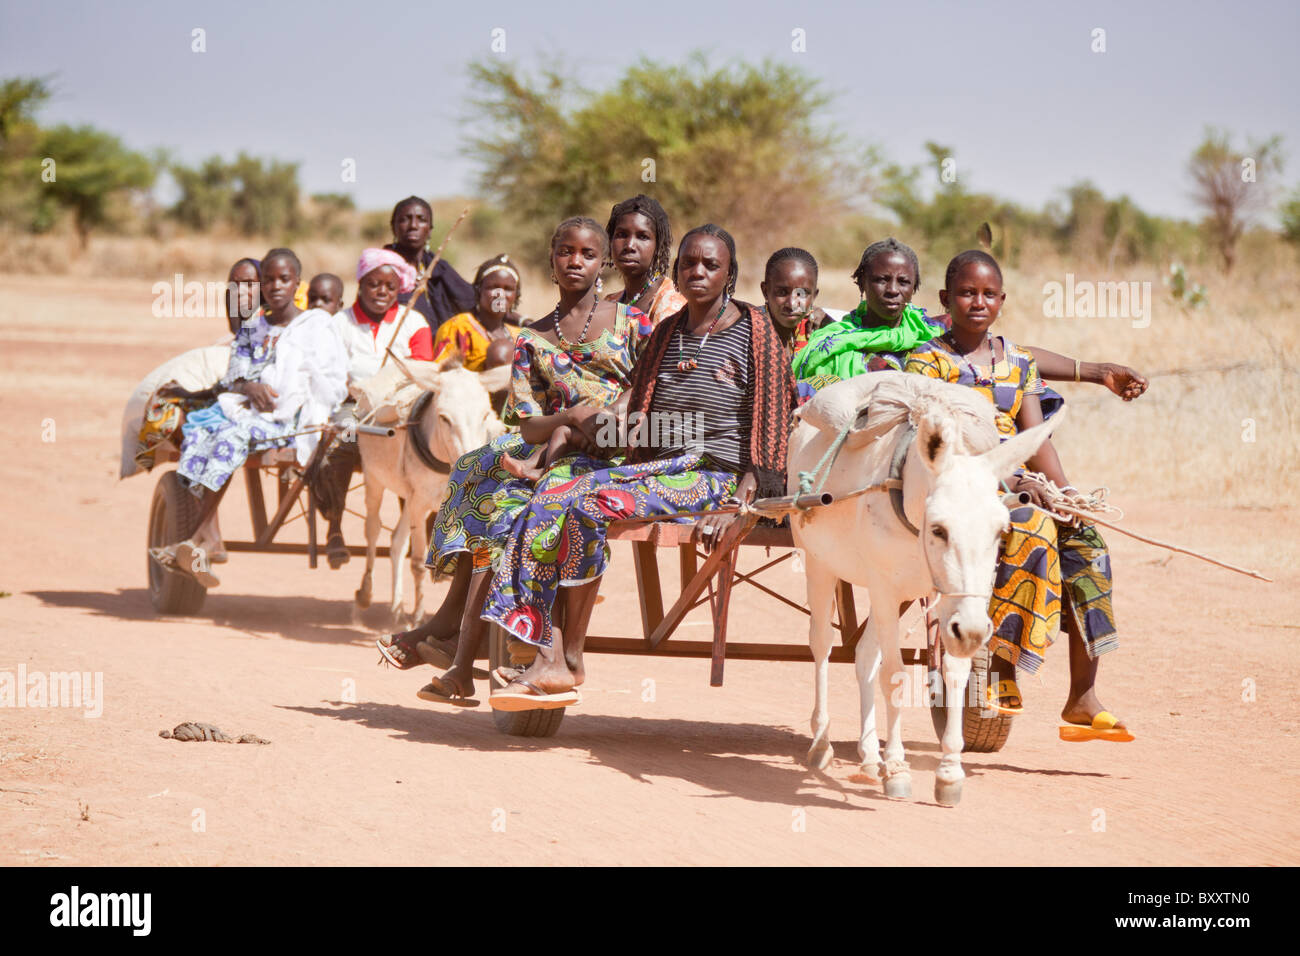 A group of Tuareg women ride a donkey cart to the Bourro market in northern Burkina Faso. - Stock Image